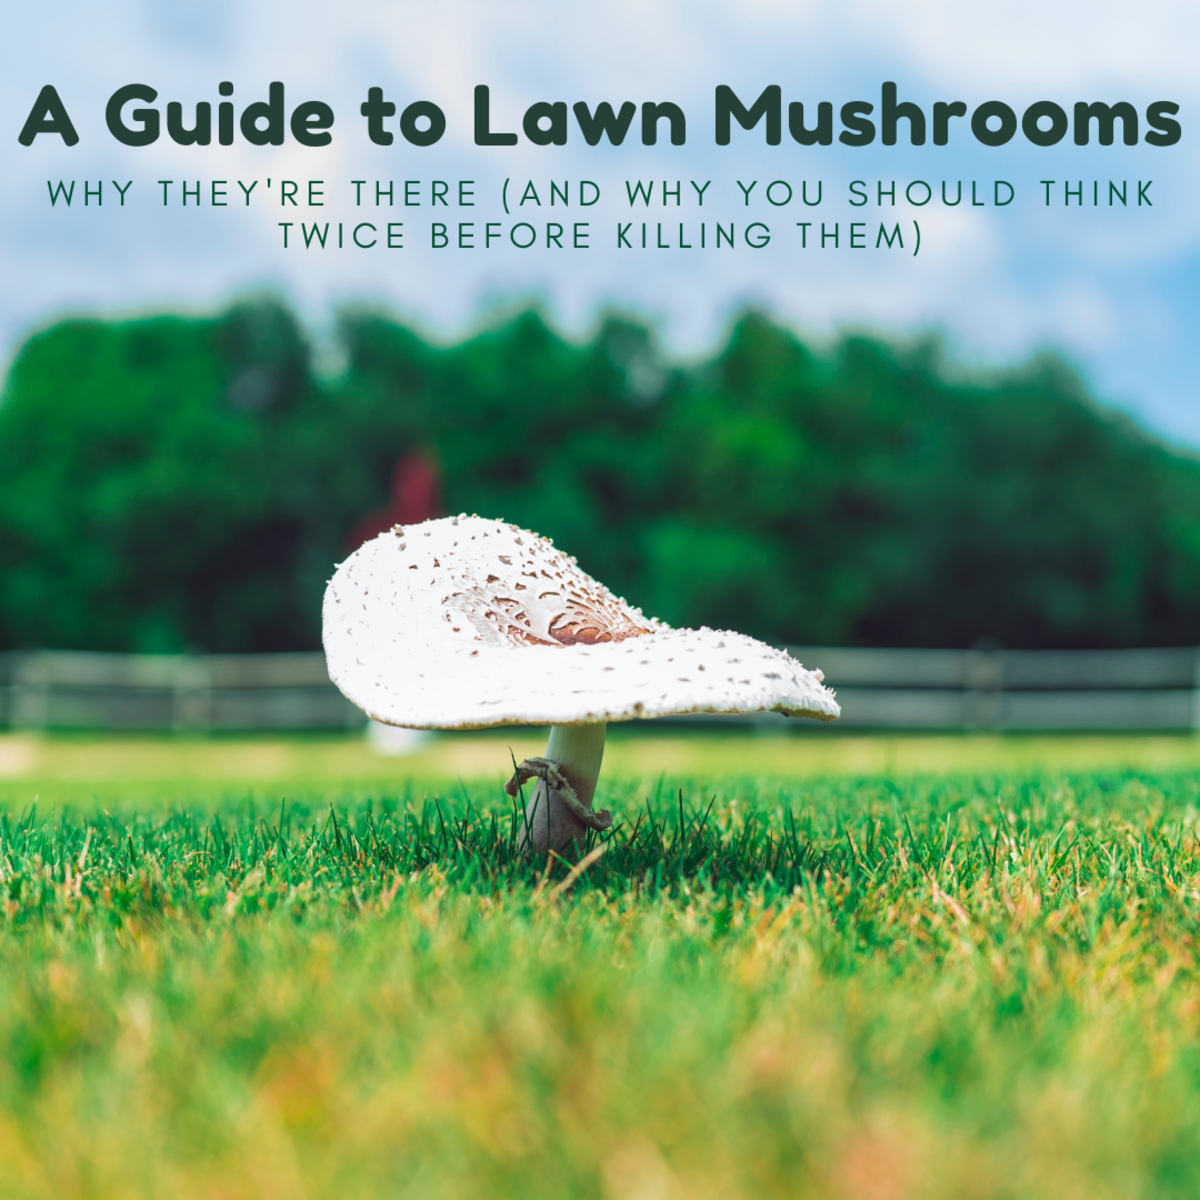 While there are several ways to get rid of lawn mushrooms (detailed below), other parts of your yard may suffer if you do.